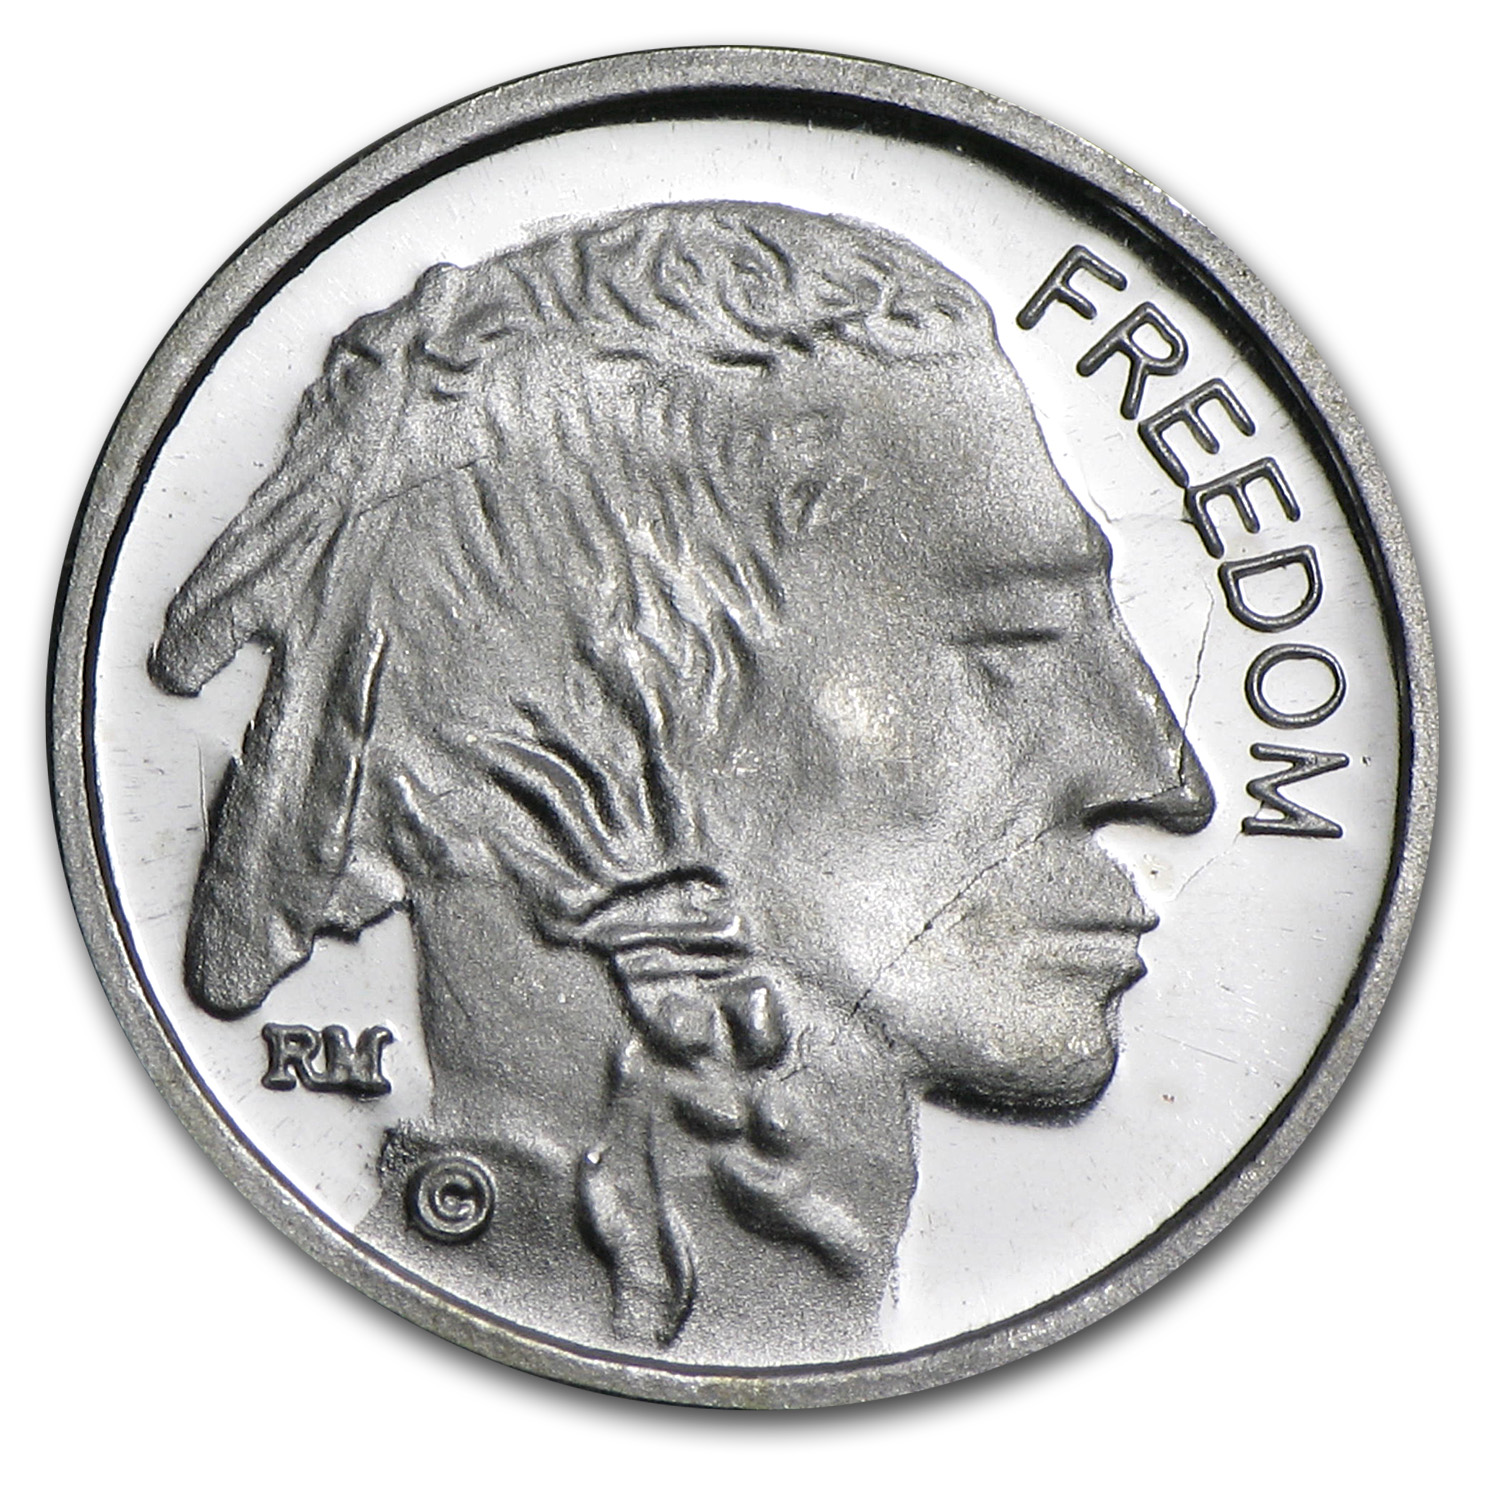 1 gram Silver Rounds - Freedom Indian Head/Buffalo Nickel